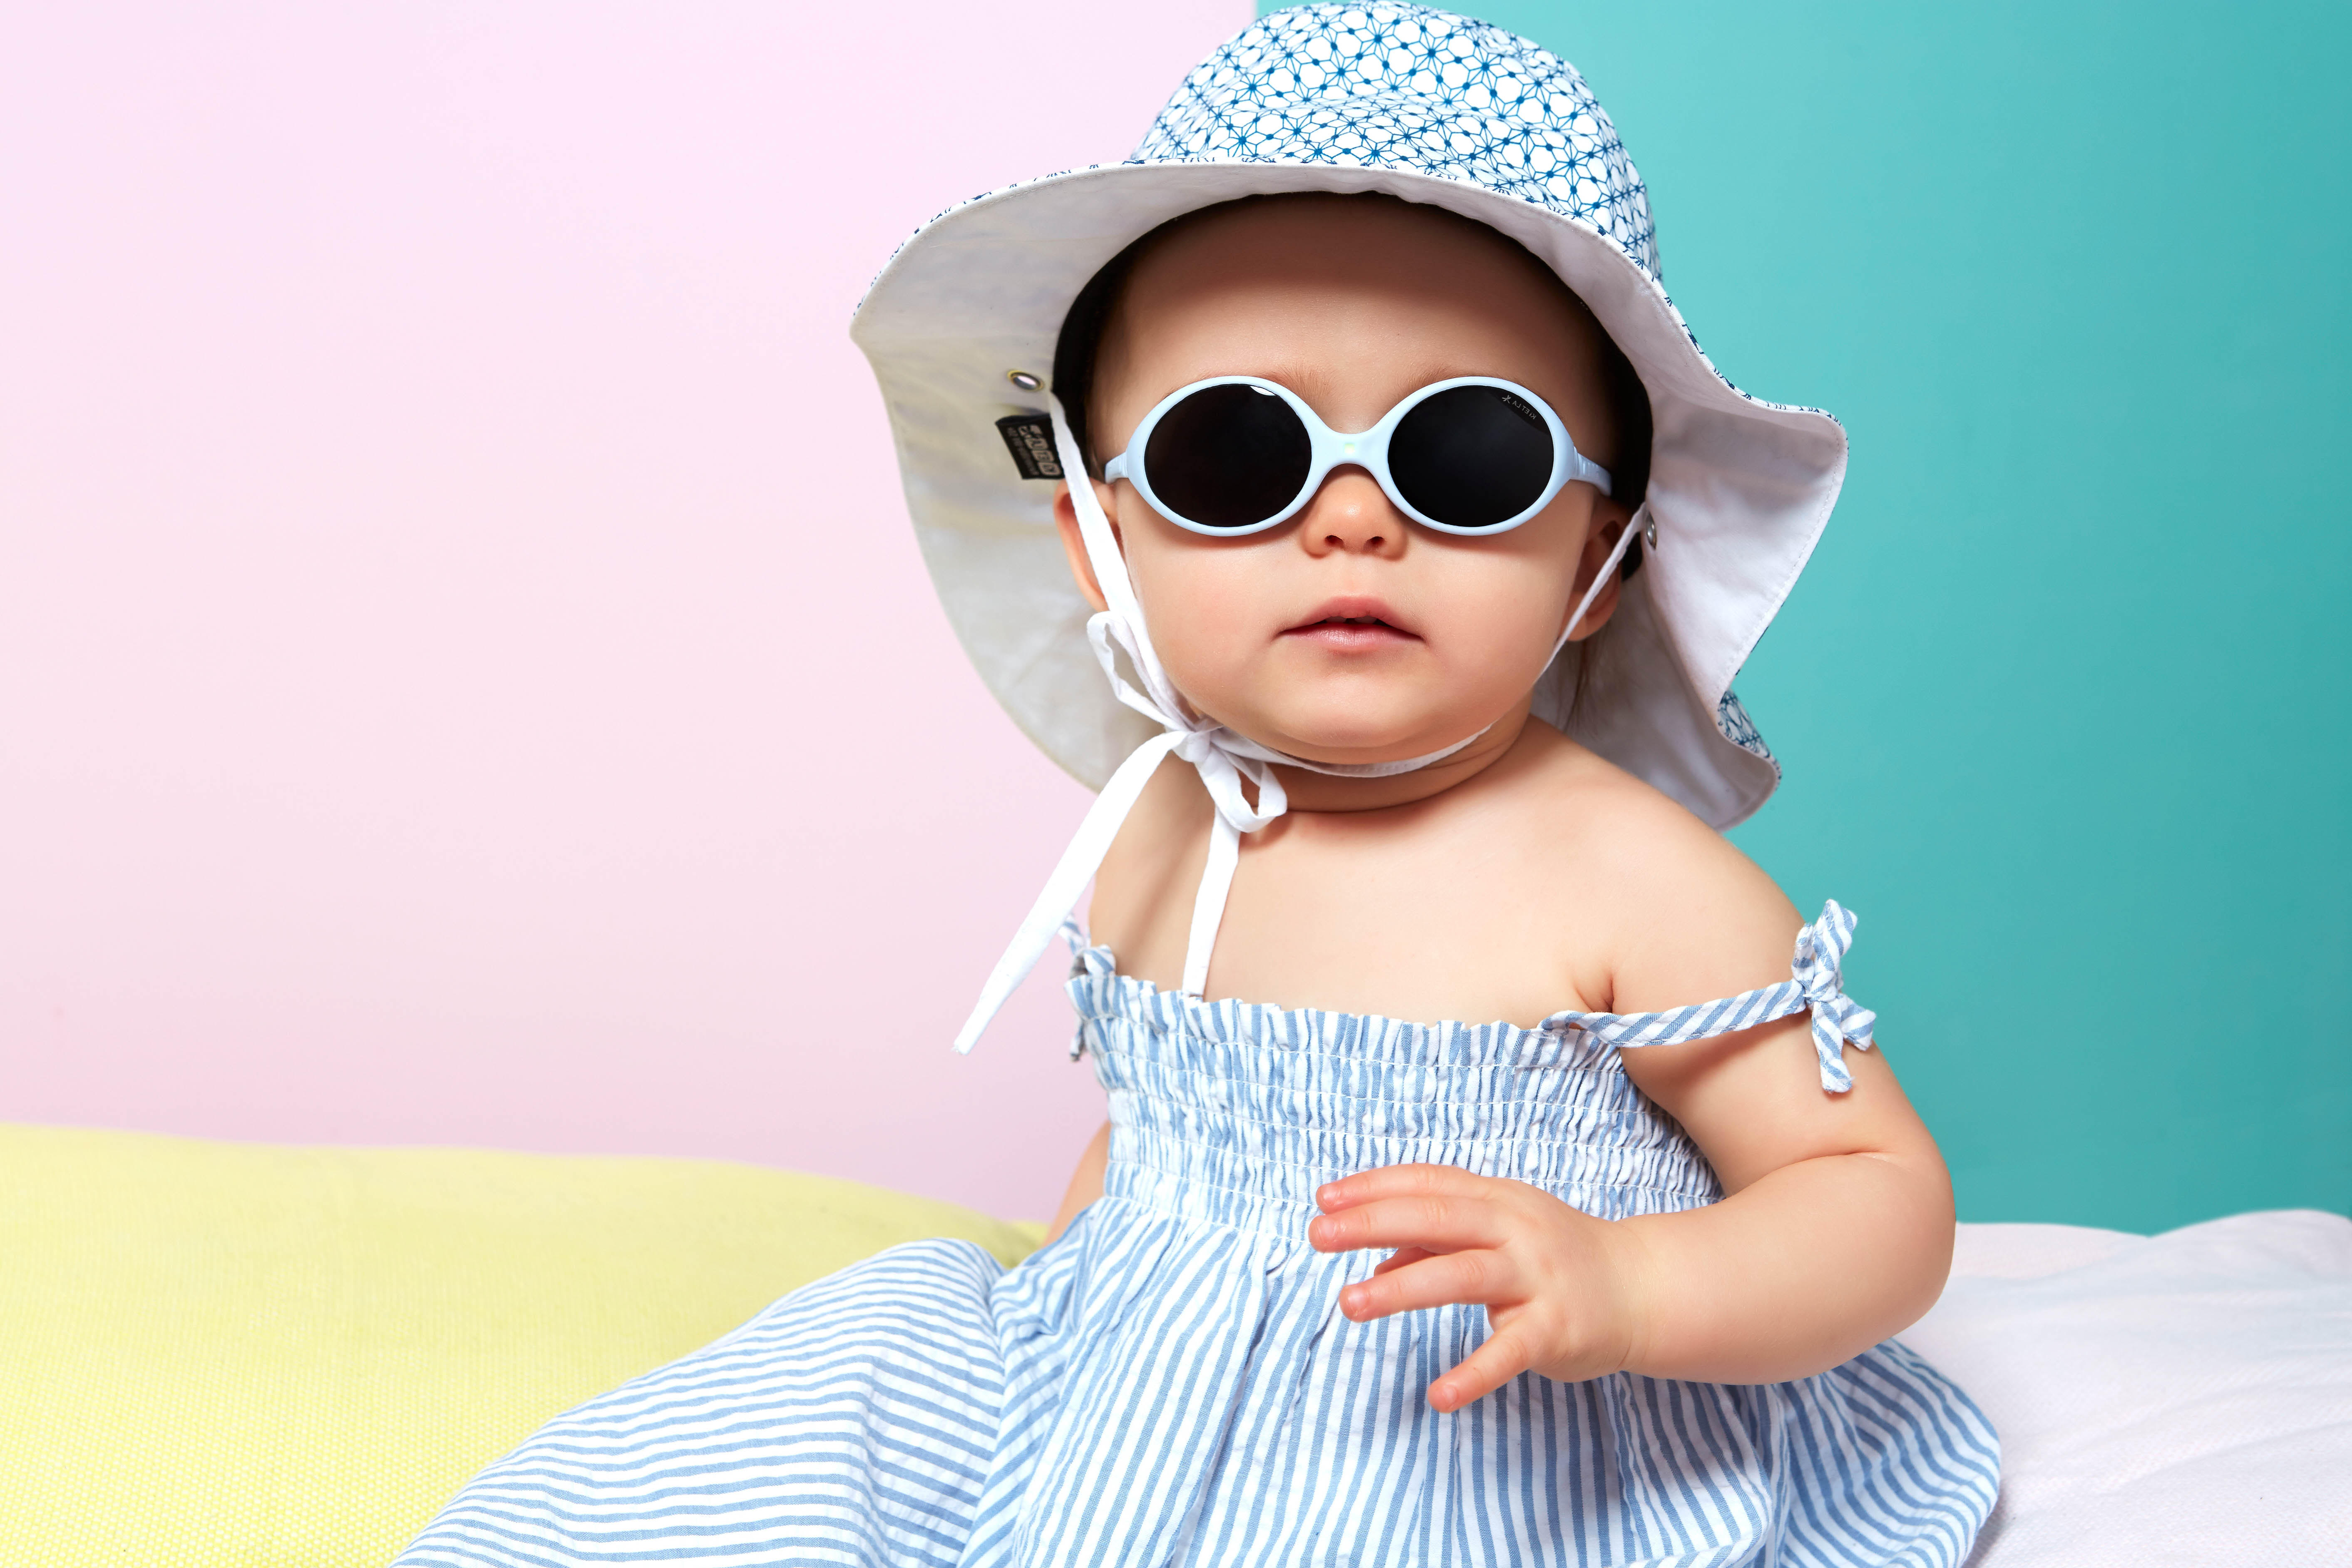 Baby sunglasses 0-1 year old